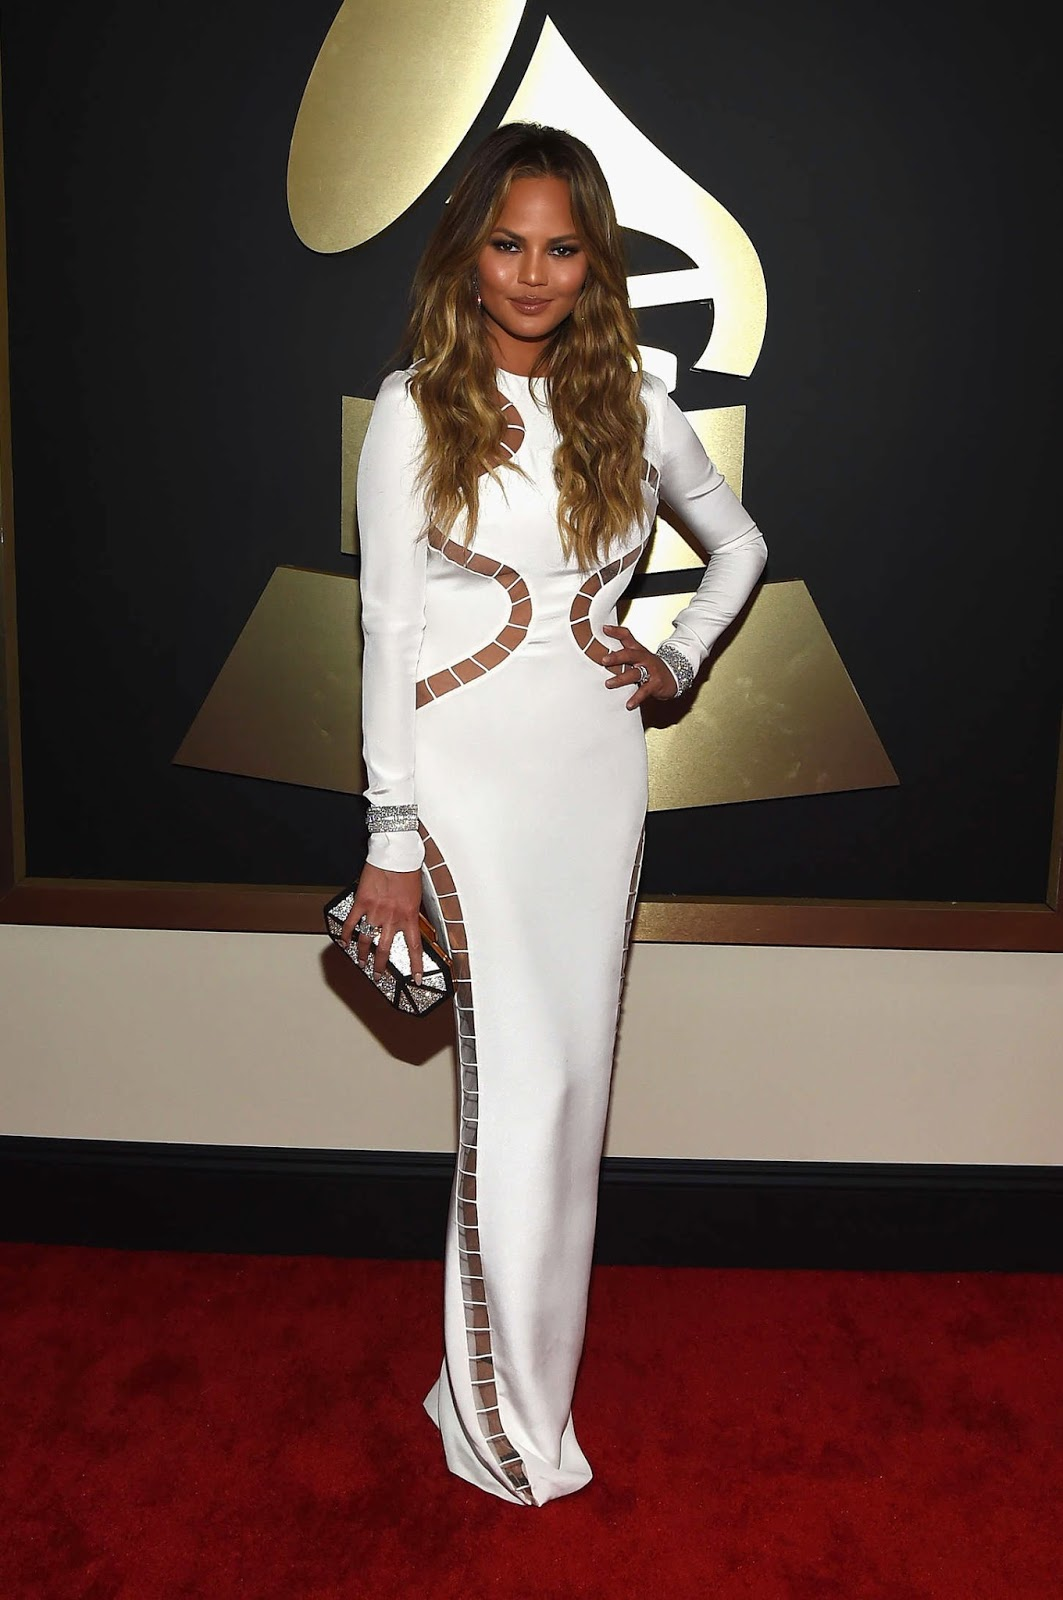 Chrissy Teigen wears a figure hugging white gown to the 2015 Grammy Awards in LA